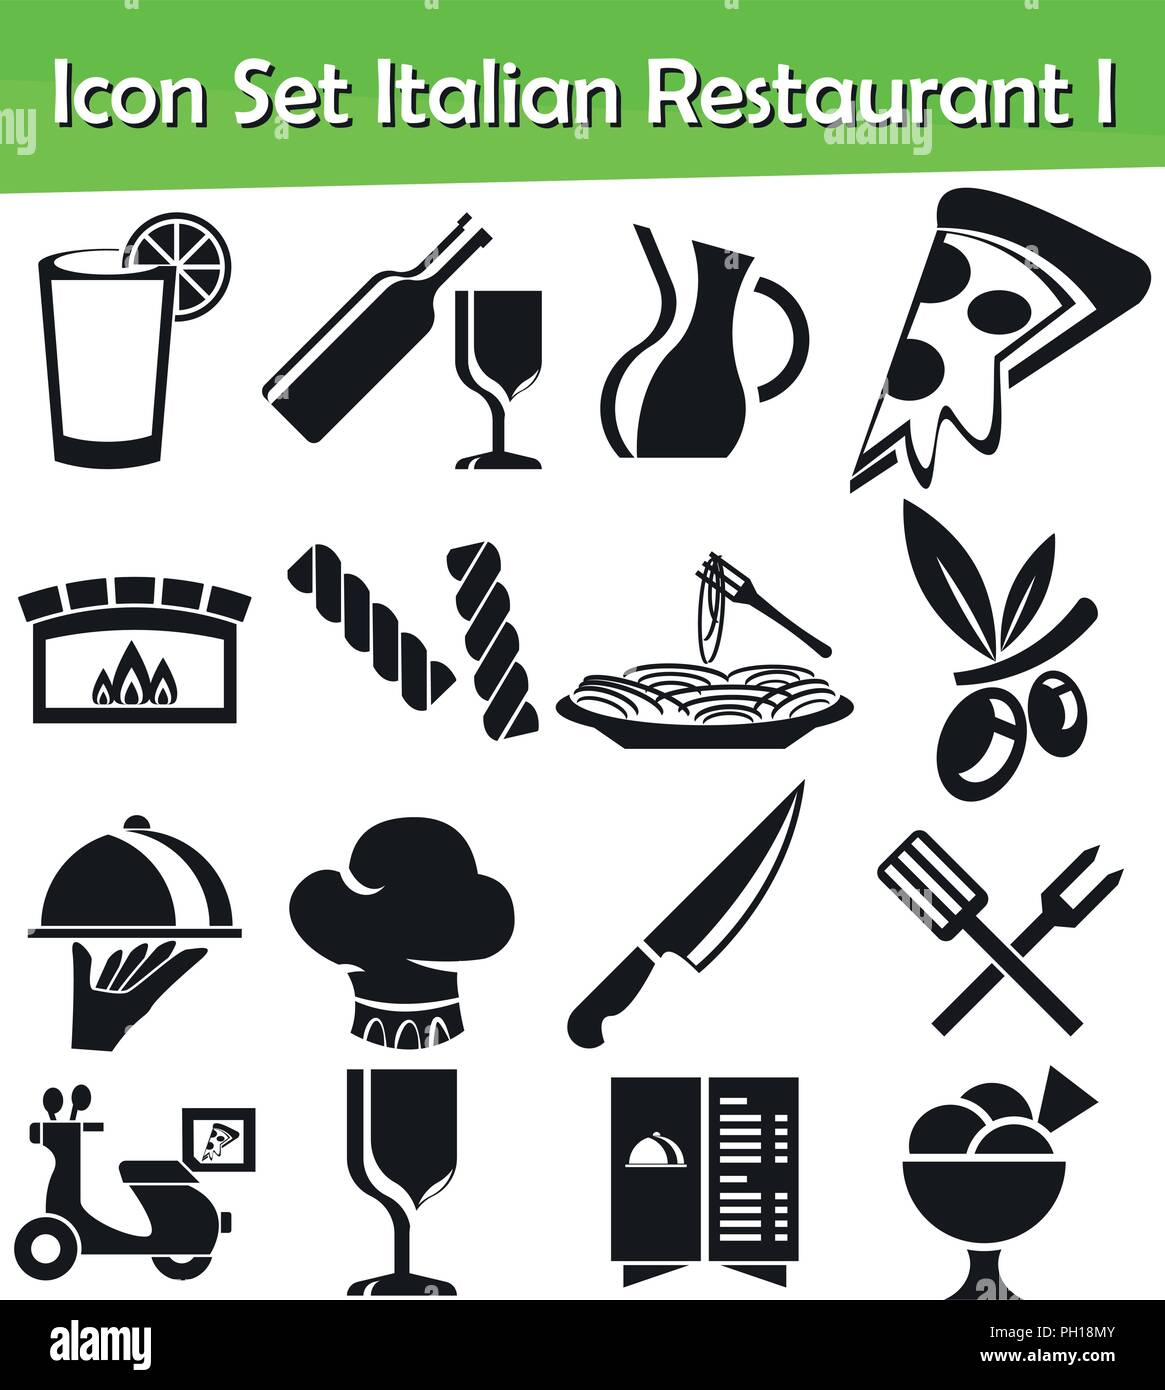 Icon Set Italian Restaurant I With 16 Icons For The Creative Use In